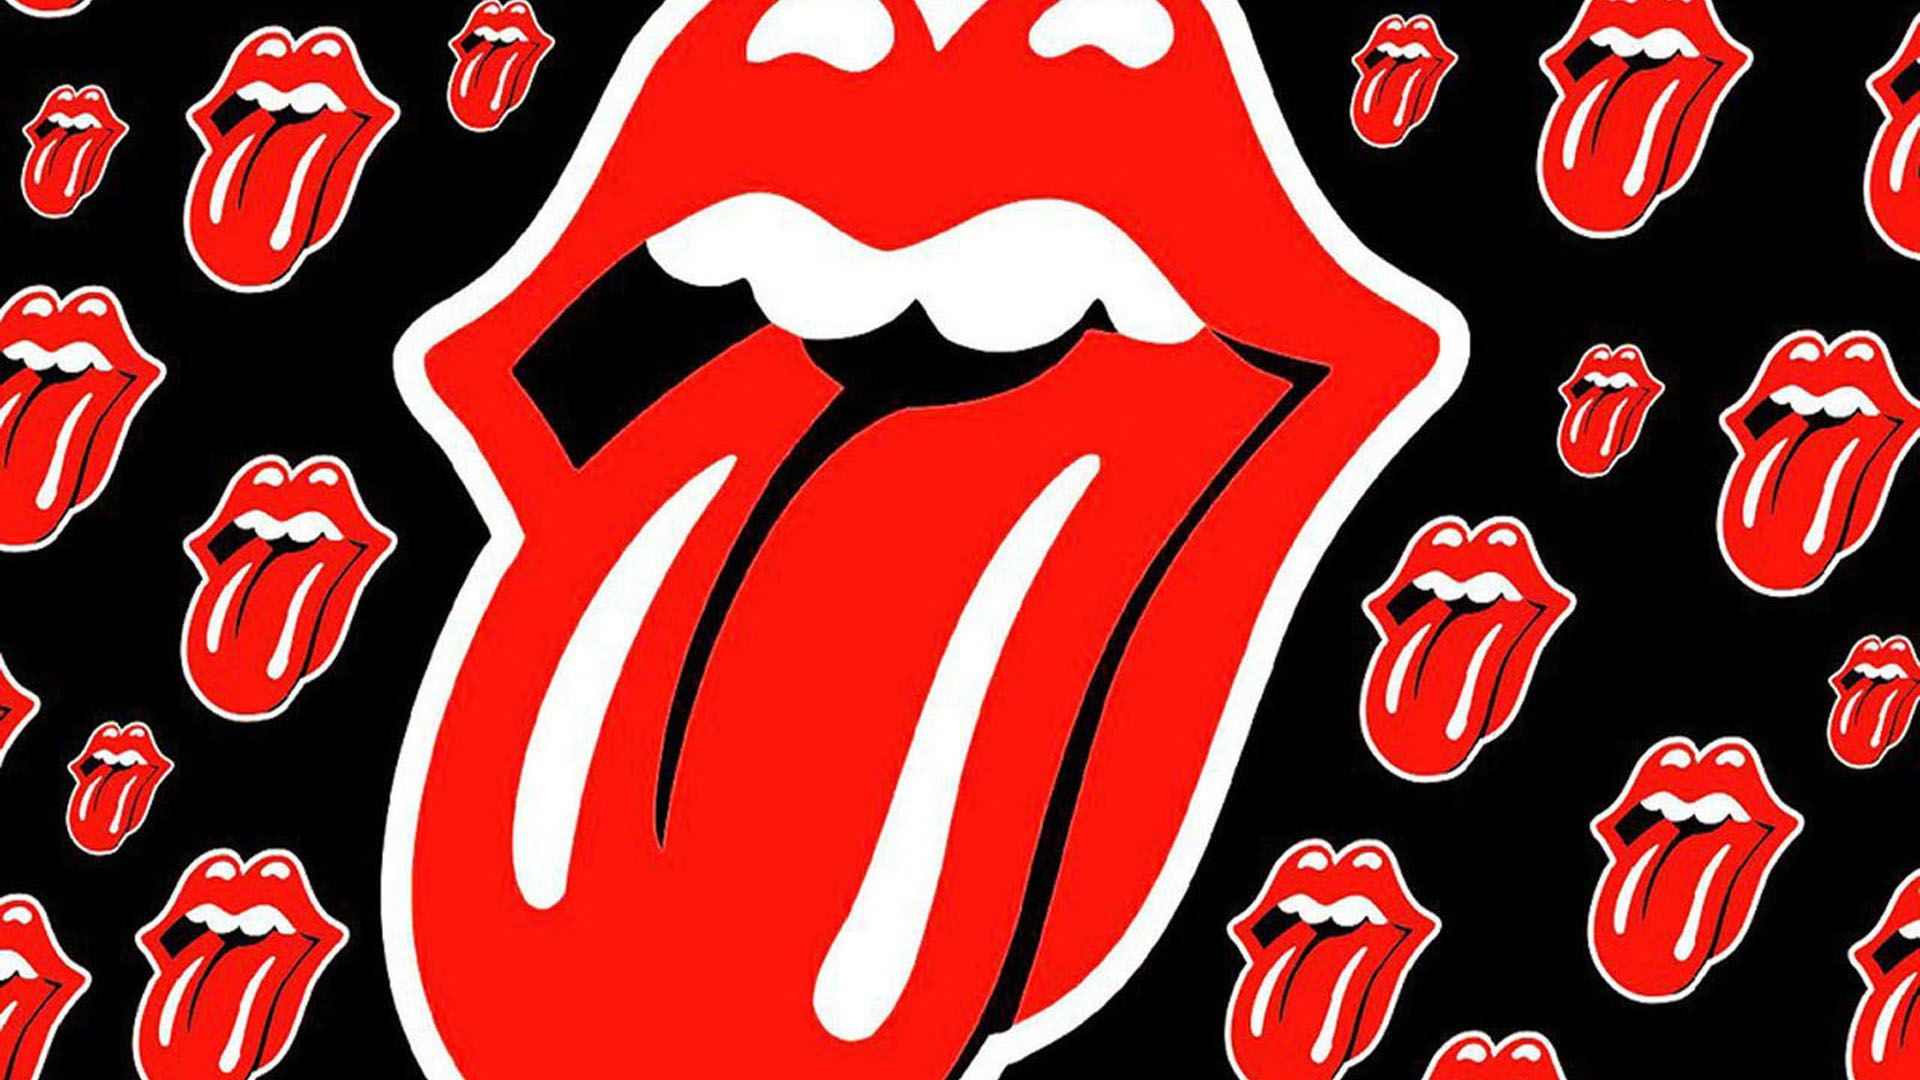 Rolling Stones Tongue Wide Wallpapers Hd Wallpapers Album Cover